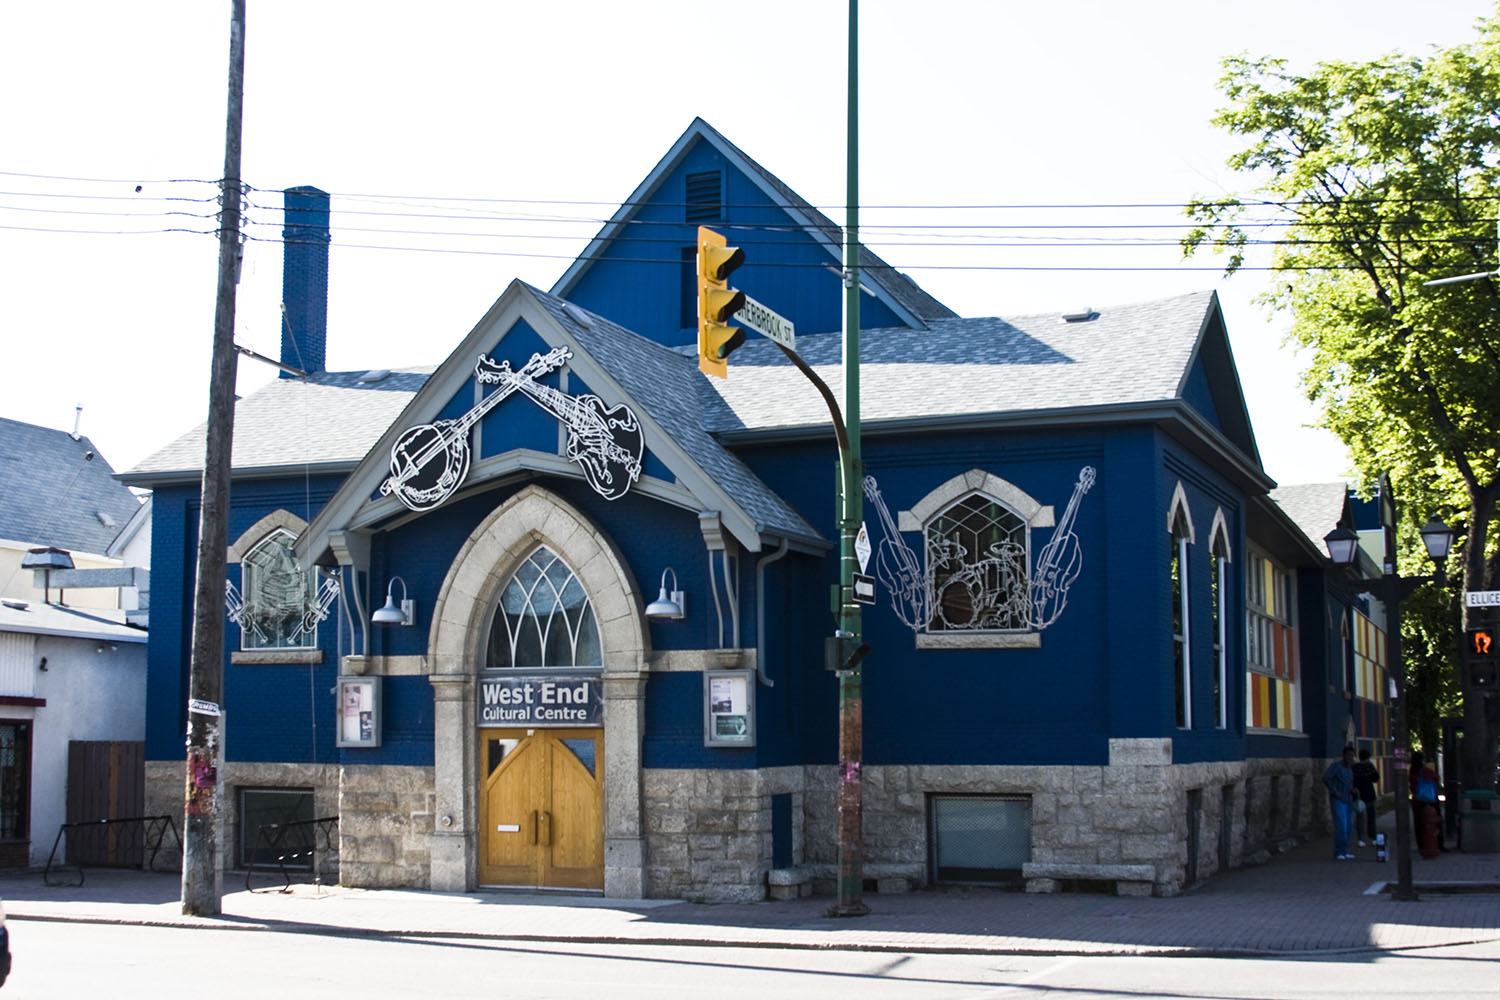 West End Cultural Centre, exterior photo of building entrance / Photo: Tracy A Wieler